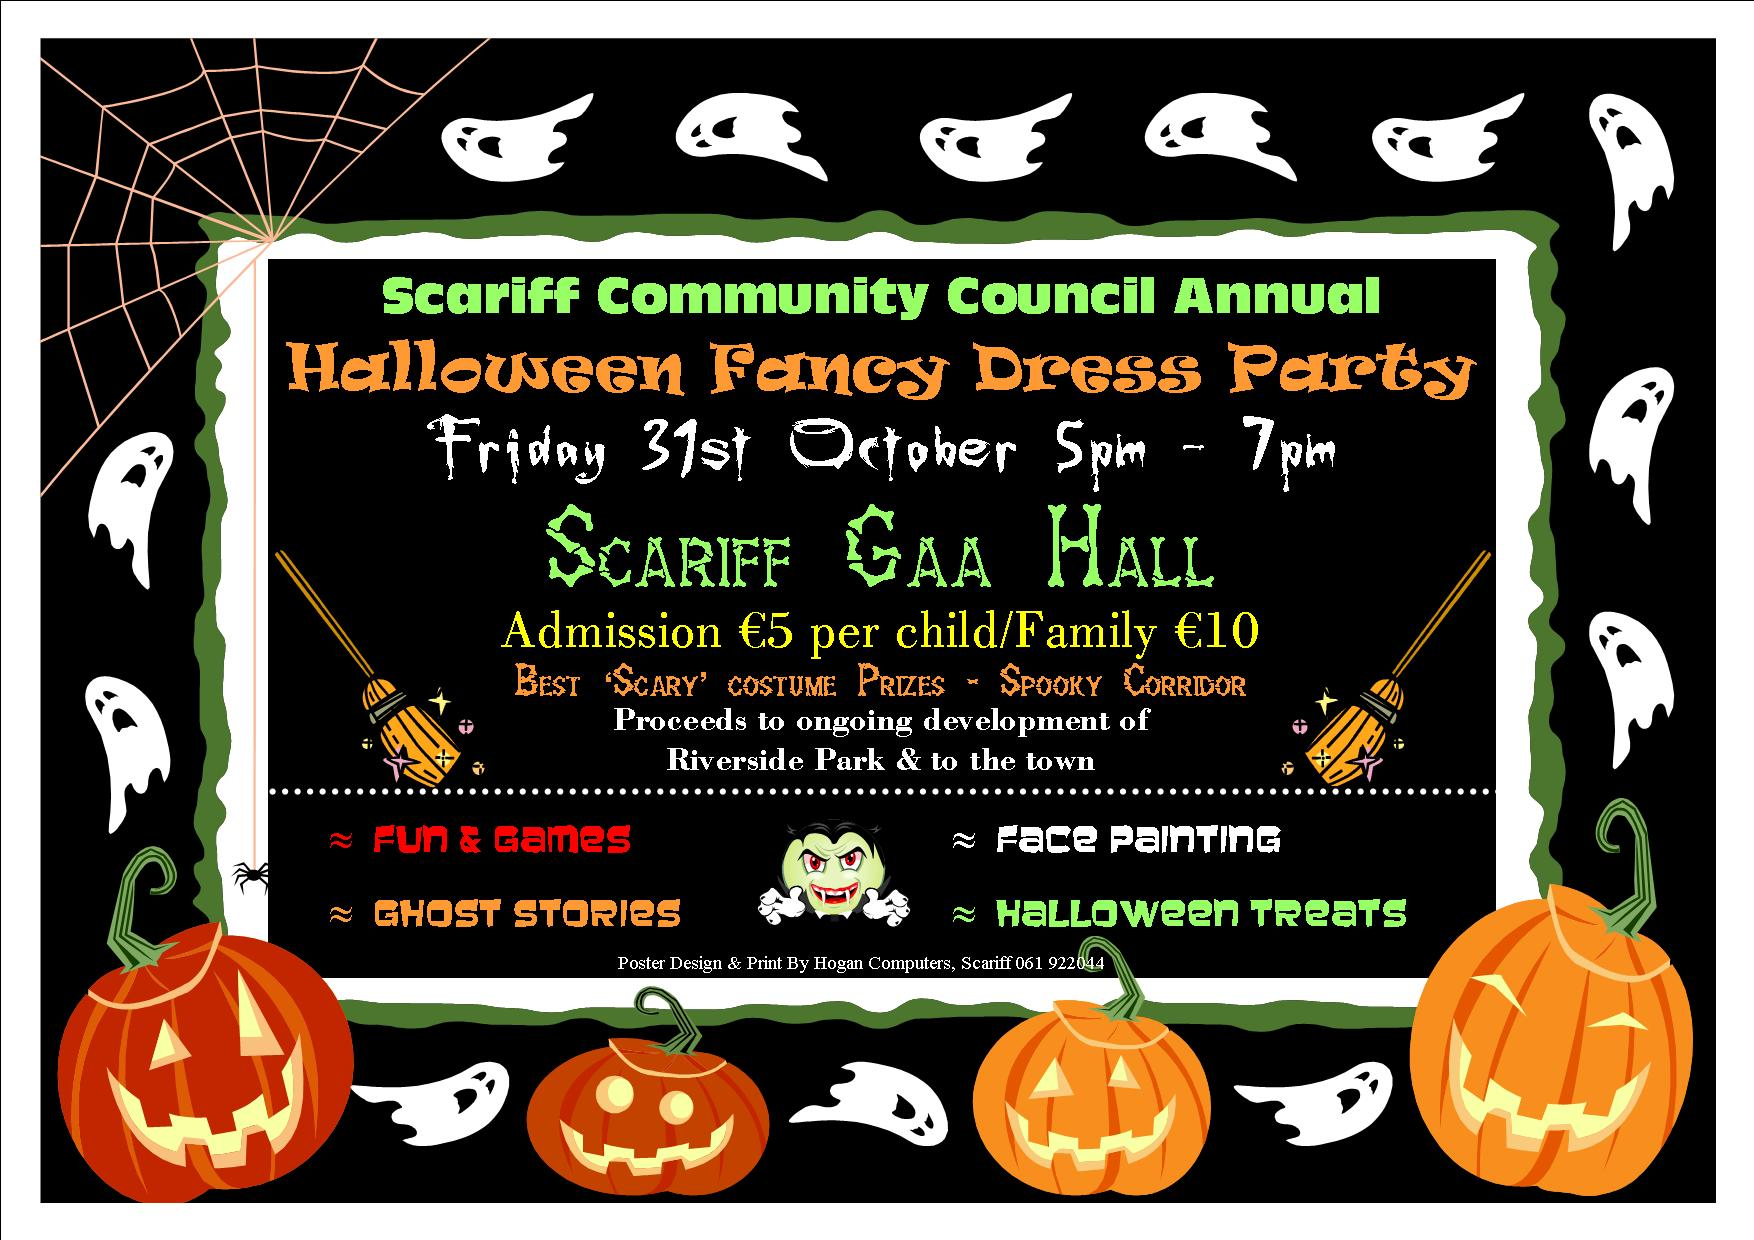 Scariff Community Council Halloween Poster 2014